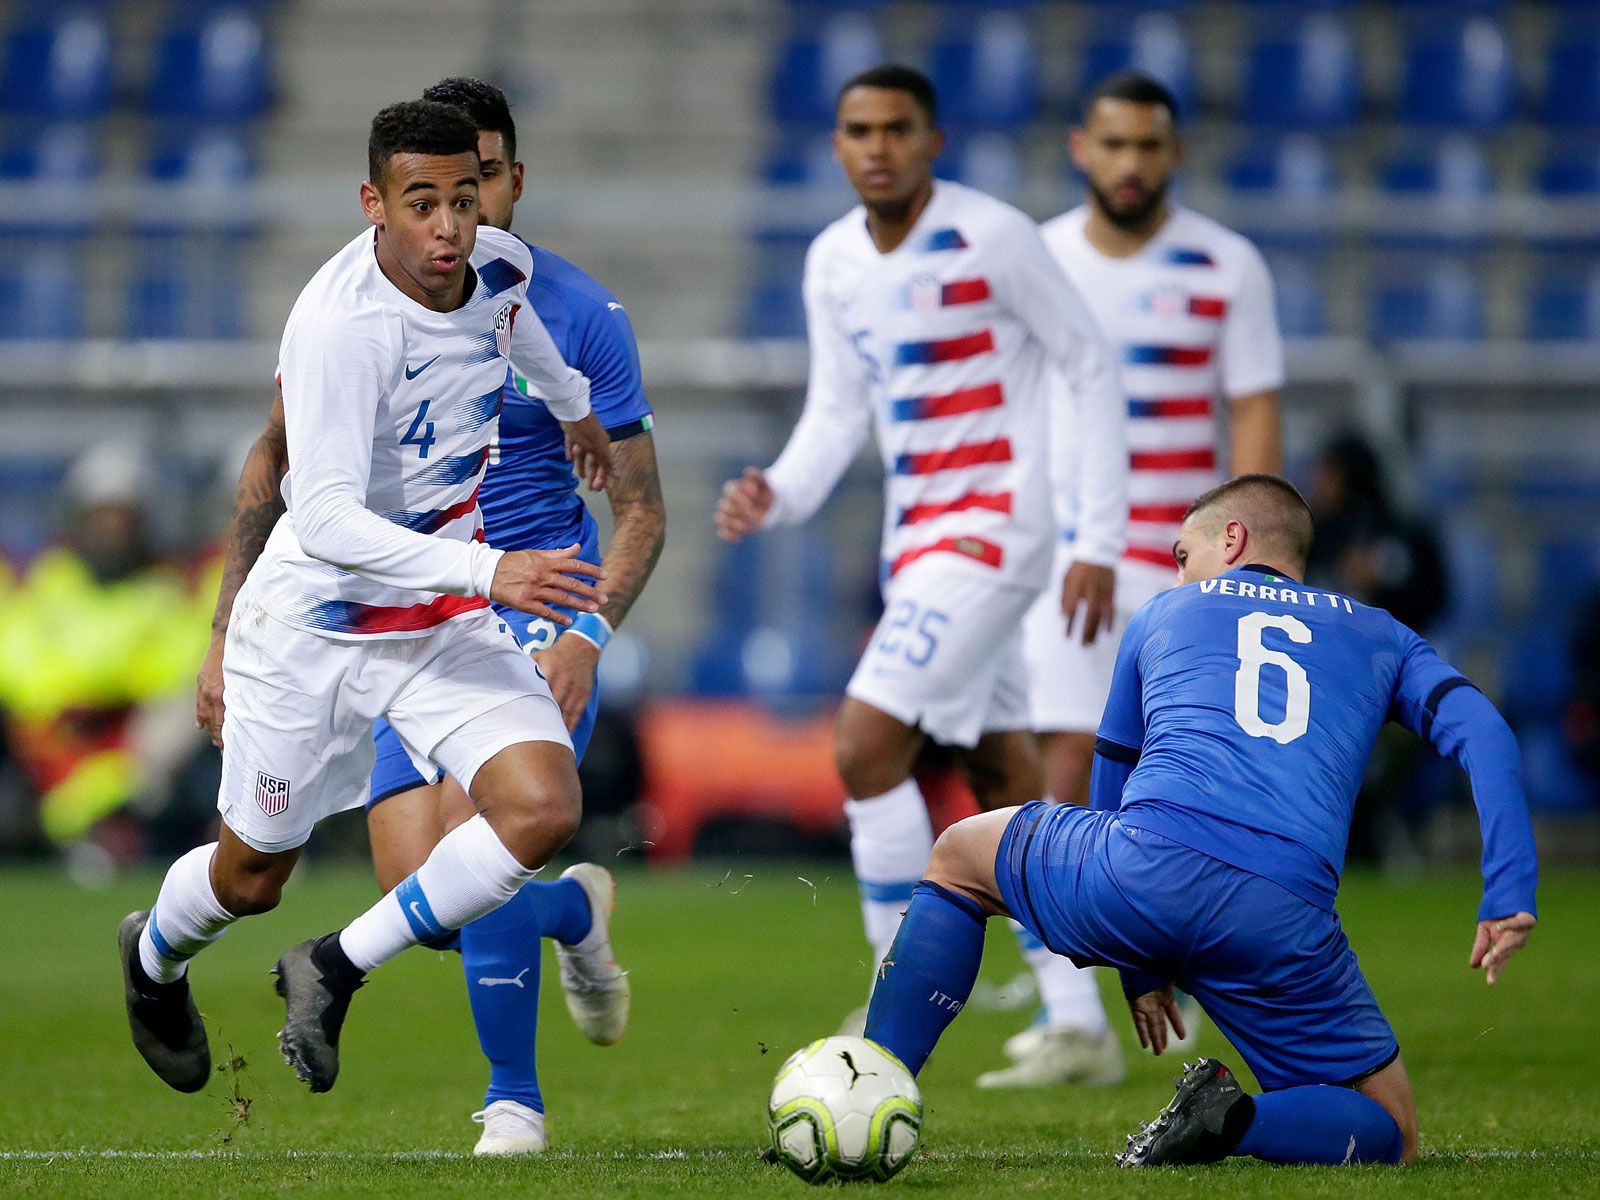 USA's Tyler Adams takes on Italy's Marco Verratti in a friendly